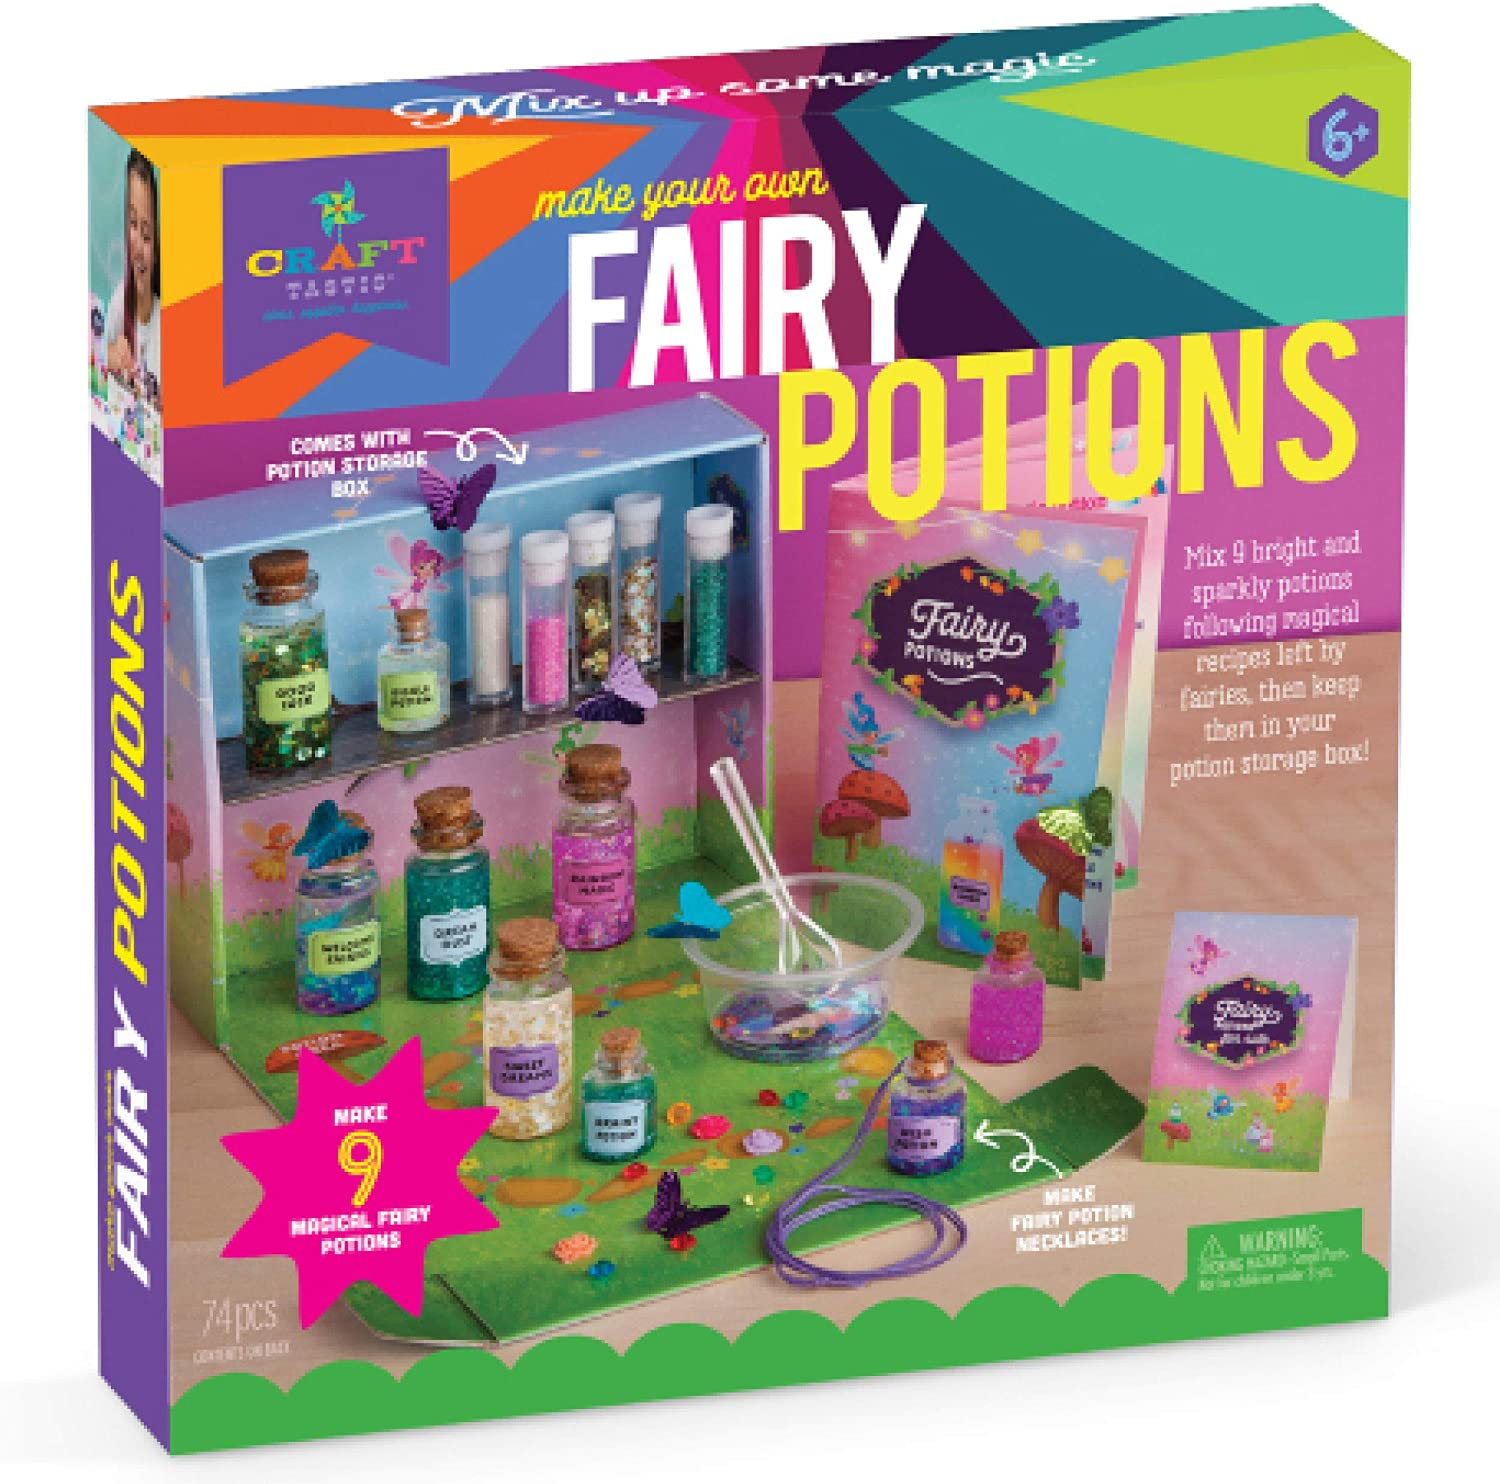 Craft-tastic Fairy Potion Kit